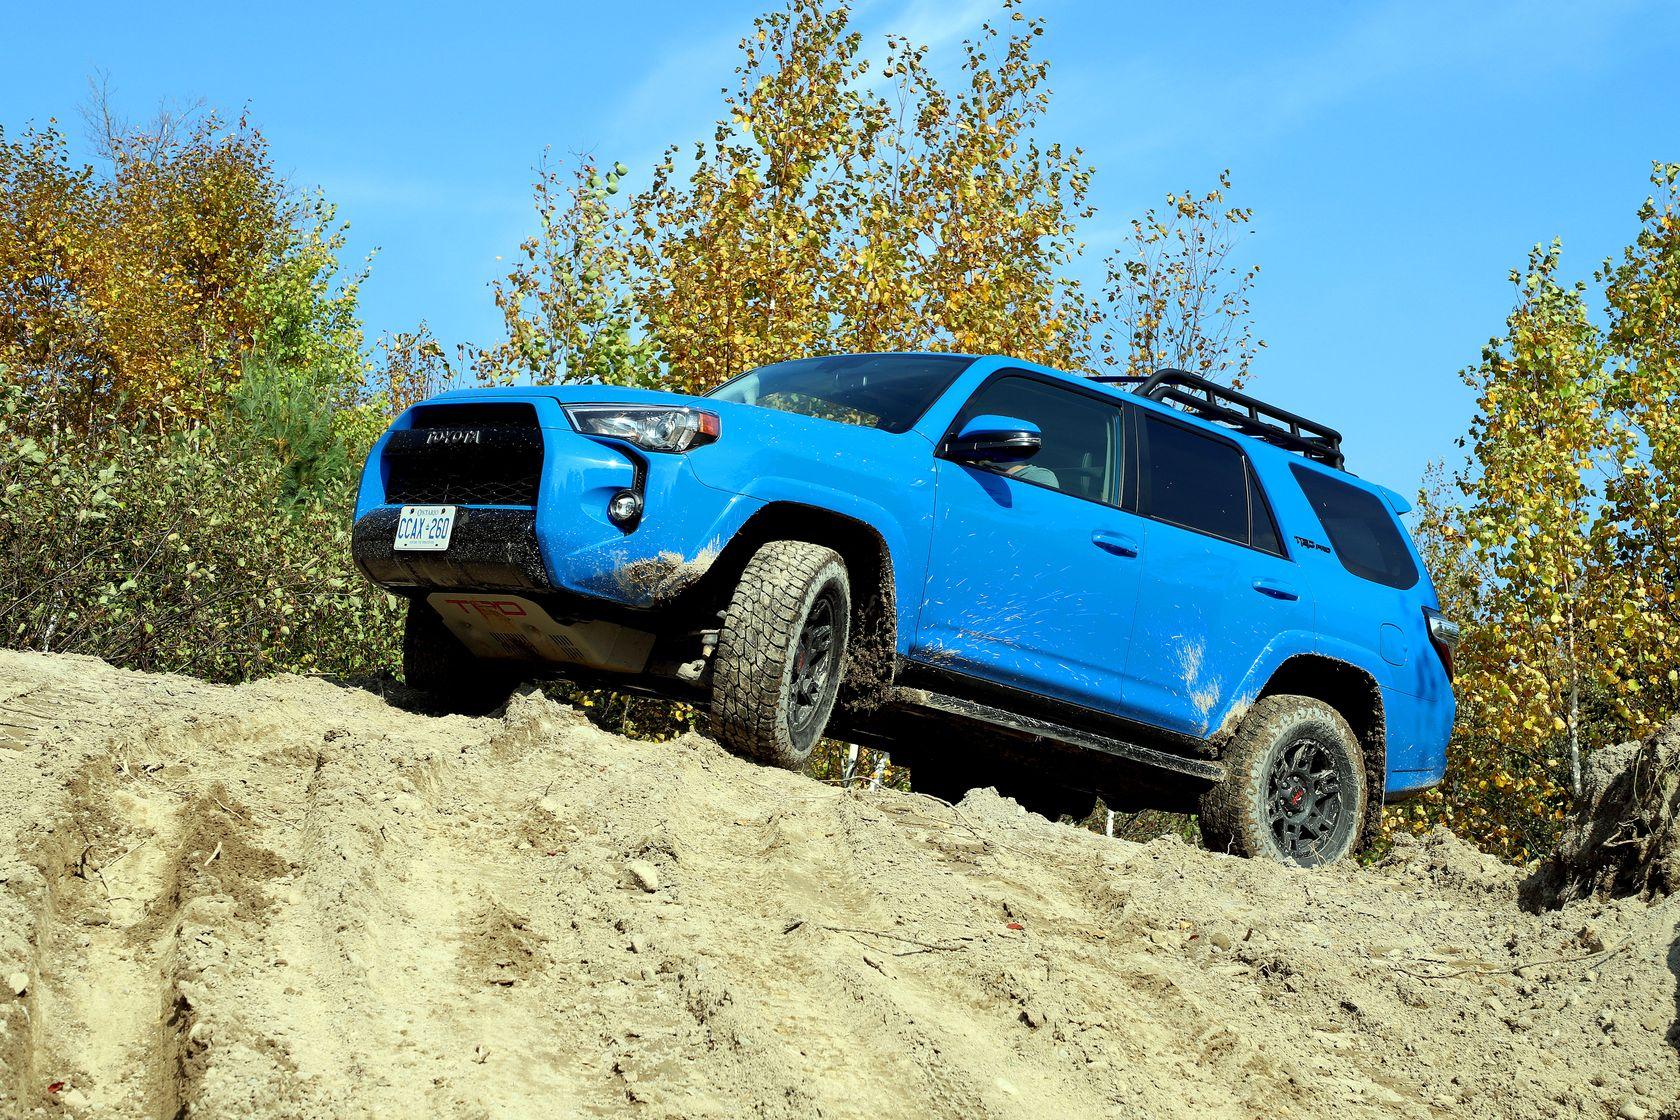 Real Rugged And Ready For Anything The Toyota 4runner Toyota Canada